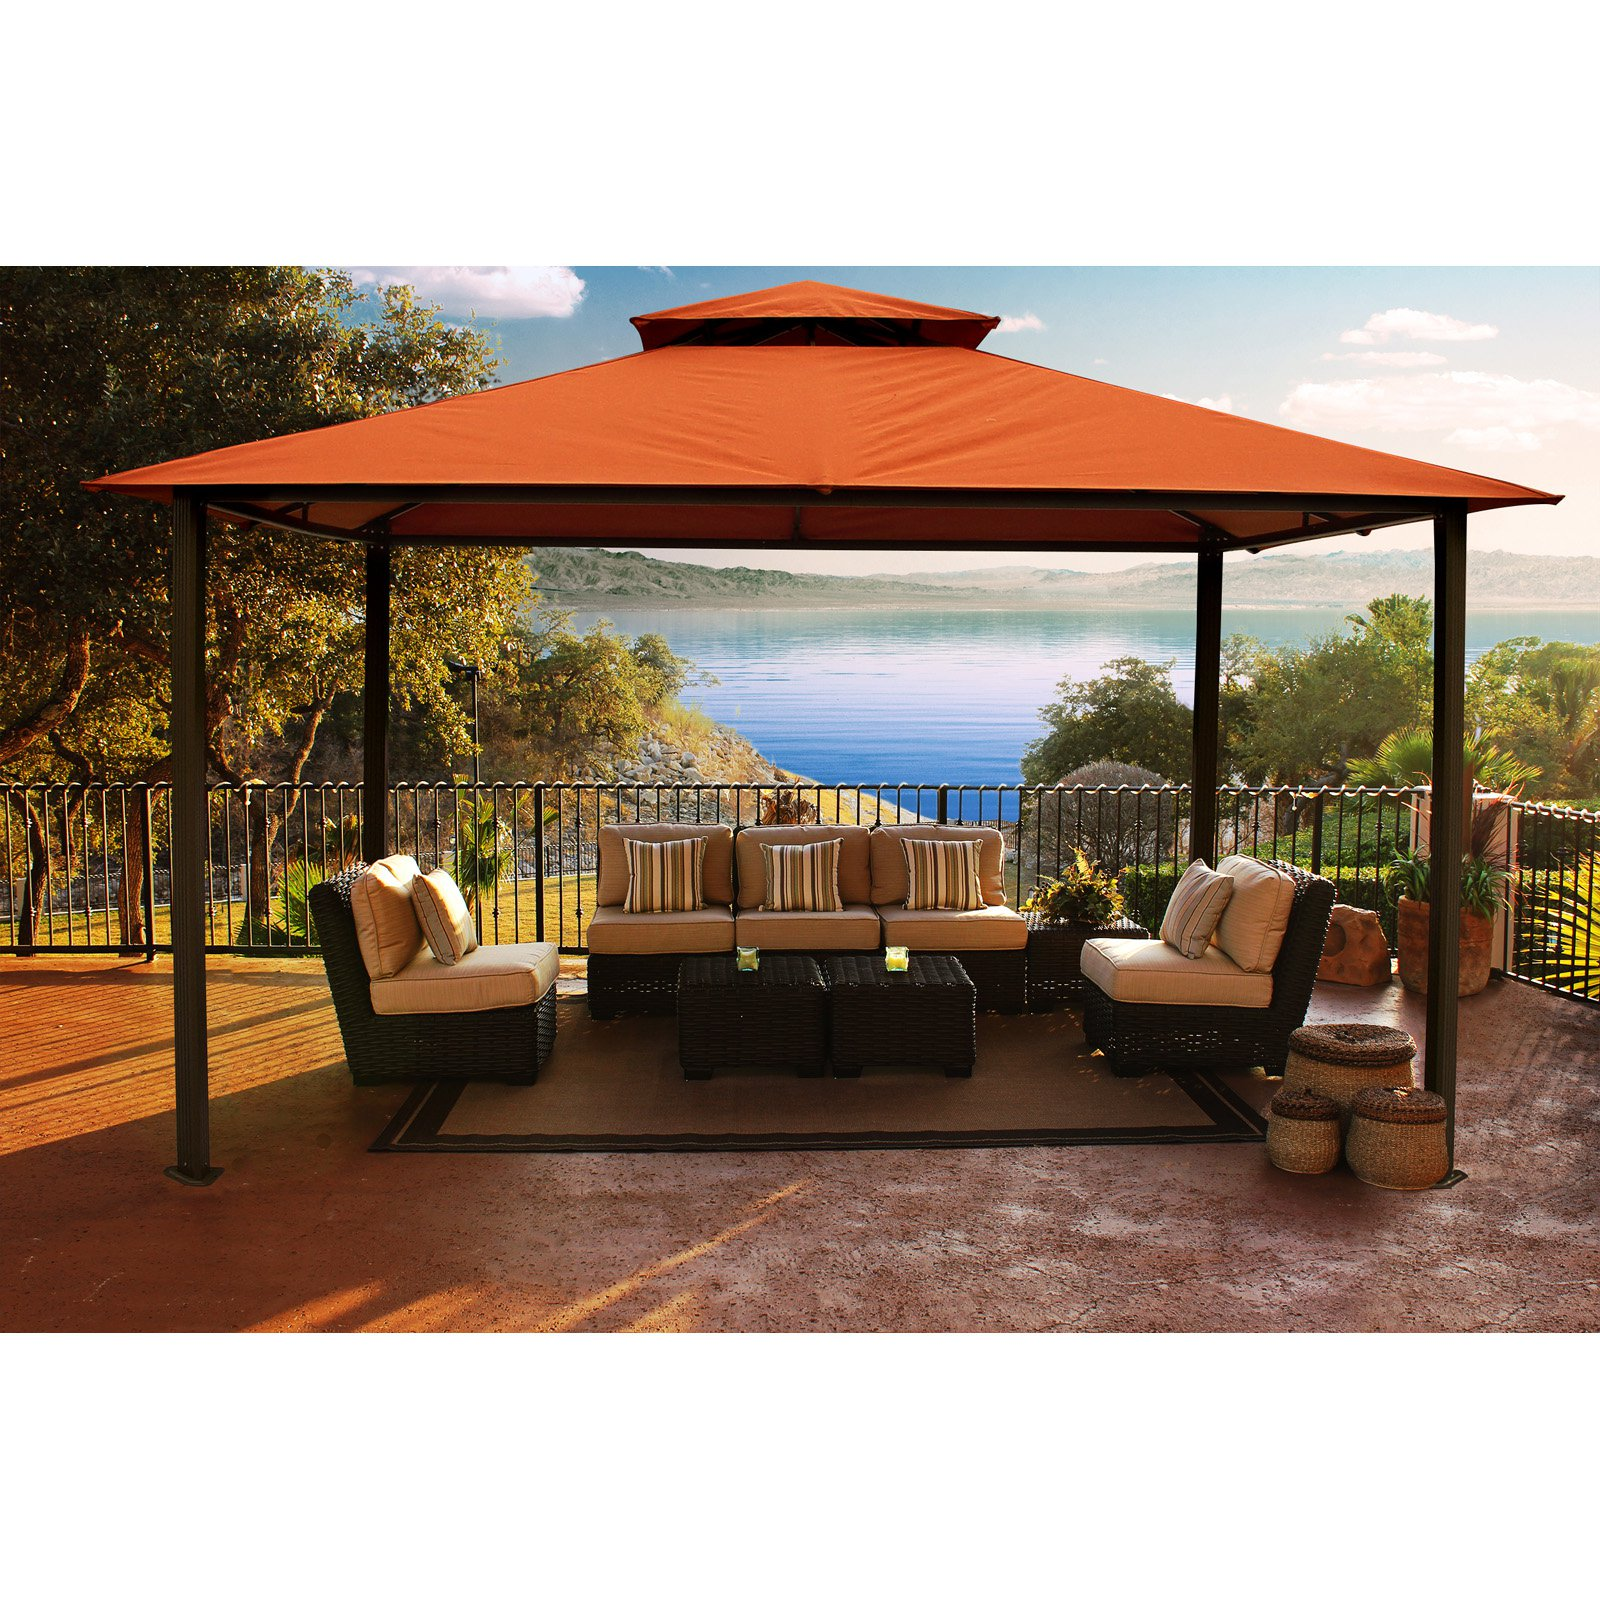 Savannah 11' x 14' Gazebo with Rust Sunbrella Top